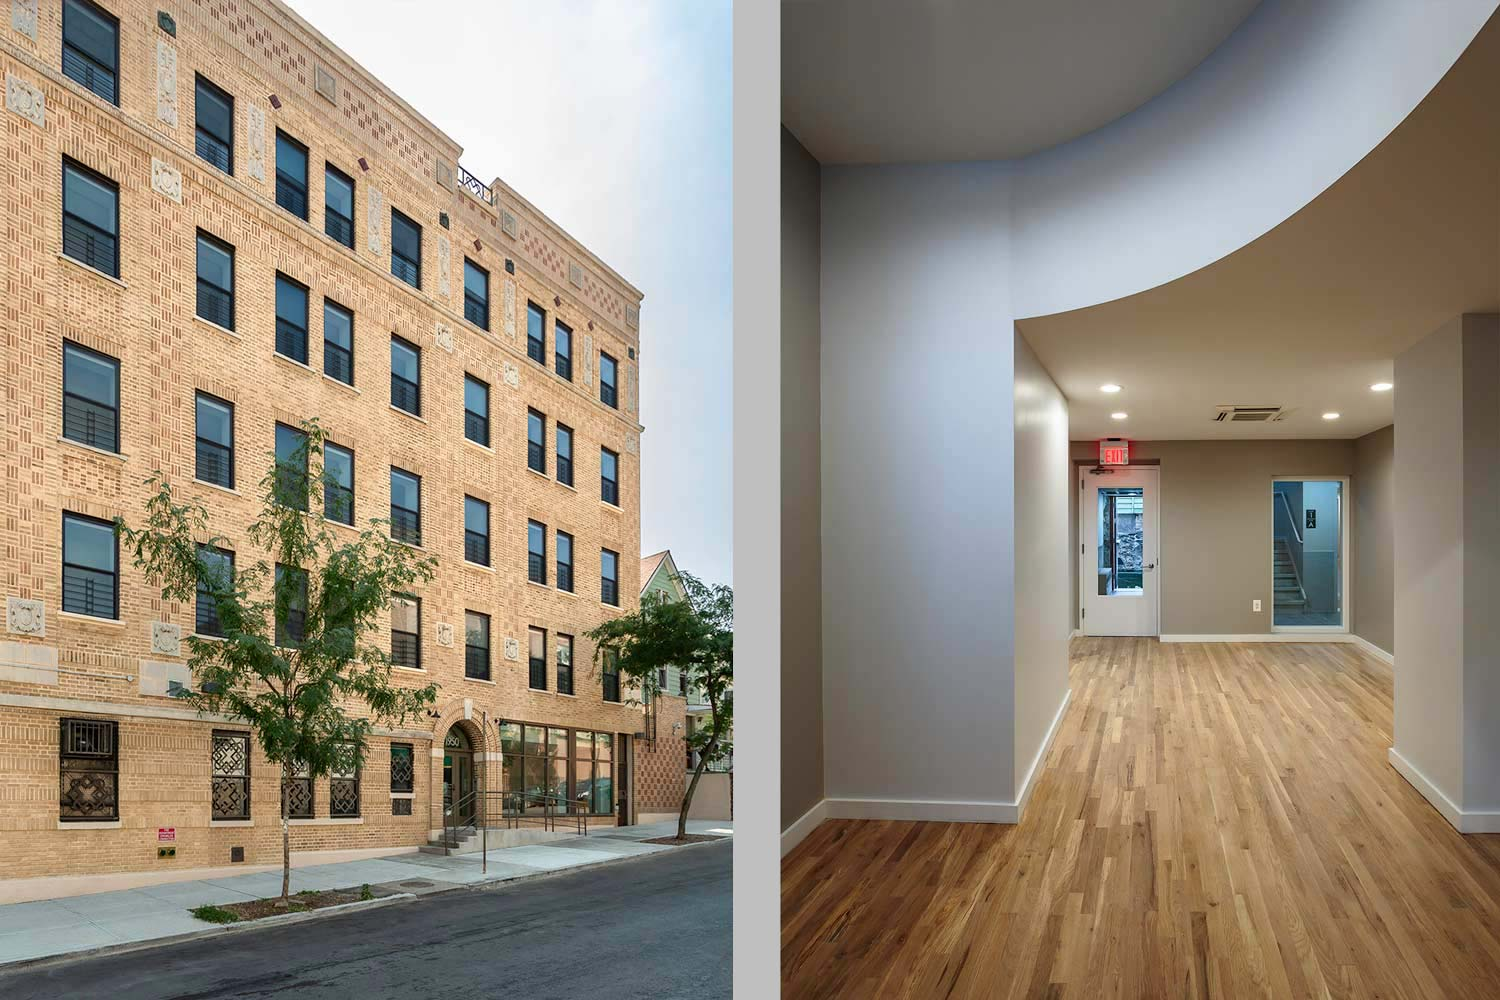 Lee Goodwin Residence supportive housing rehabilitation and reconfiguration by OCV Architects